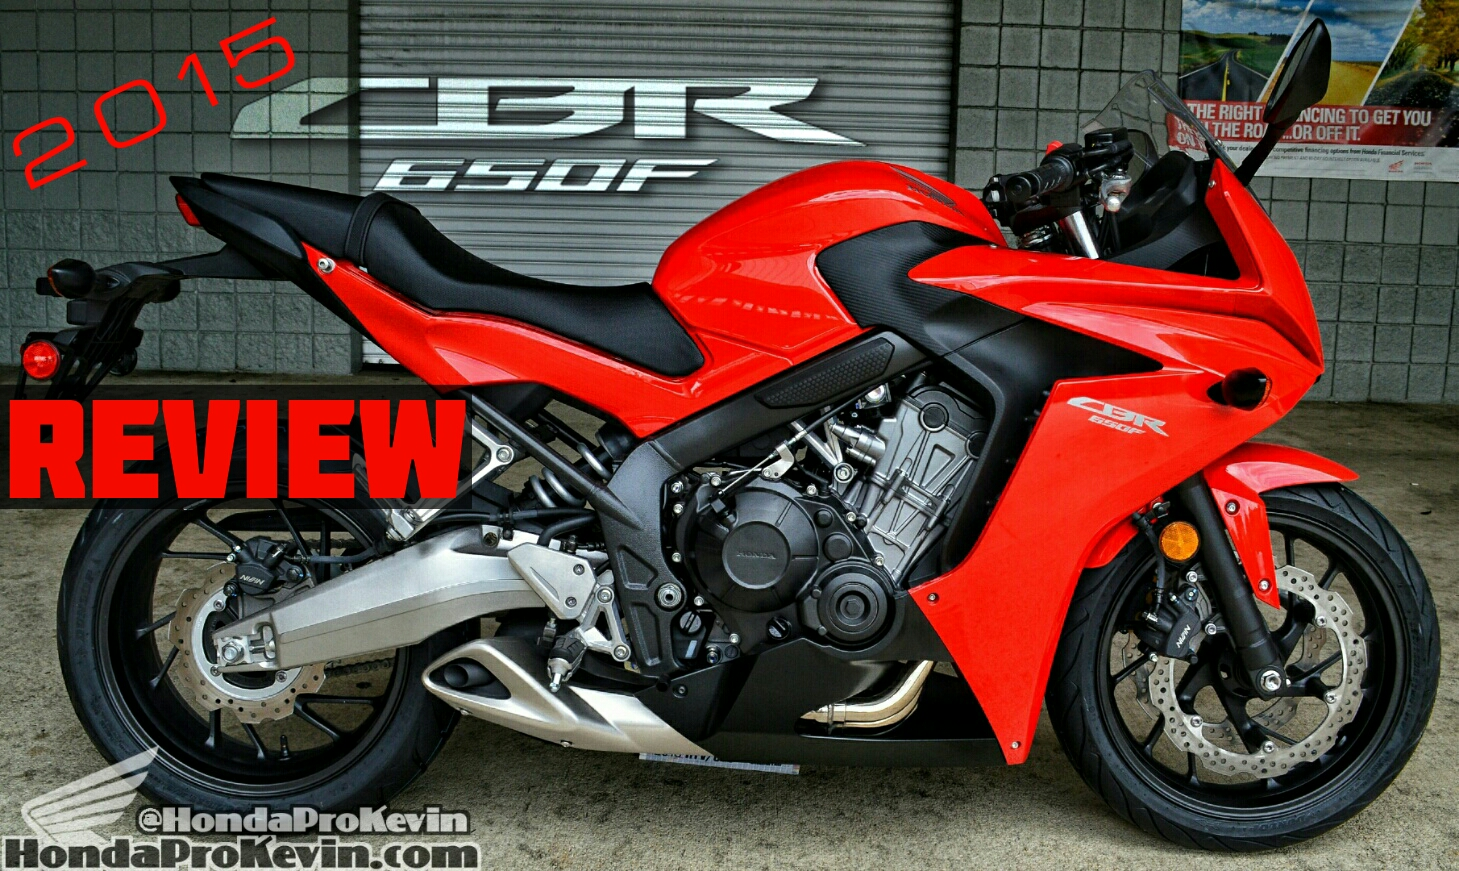 2015 Honda Cbr650f Ride Review Of Specs Pictures Videos Pro Cycle Tach Wiring Motorcycle Kevin